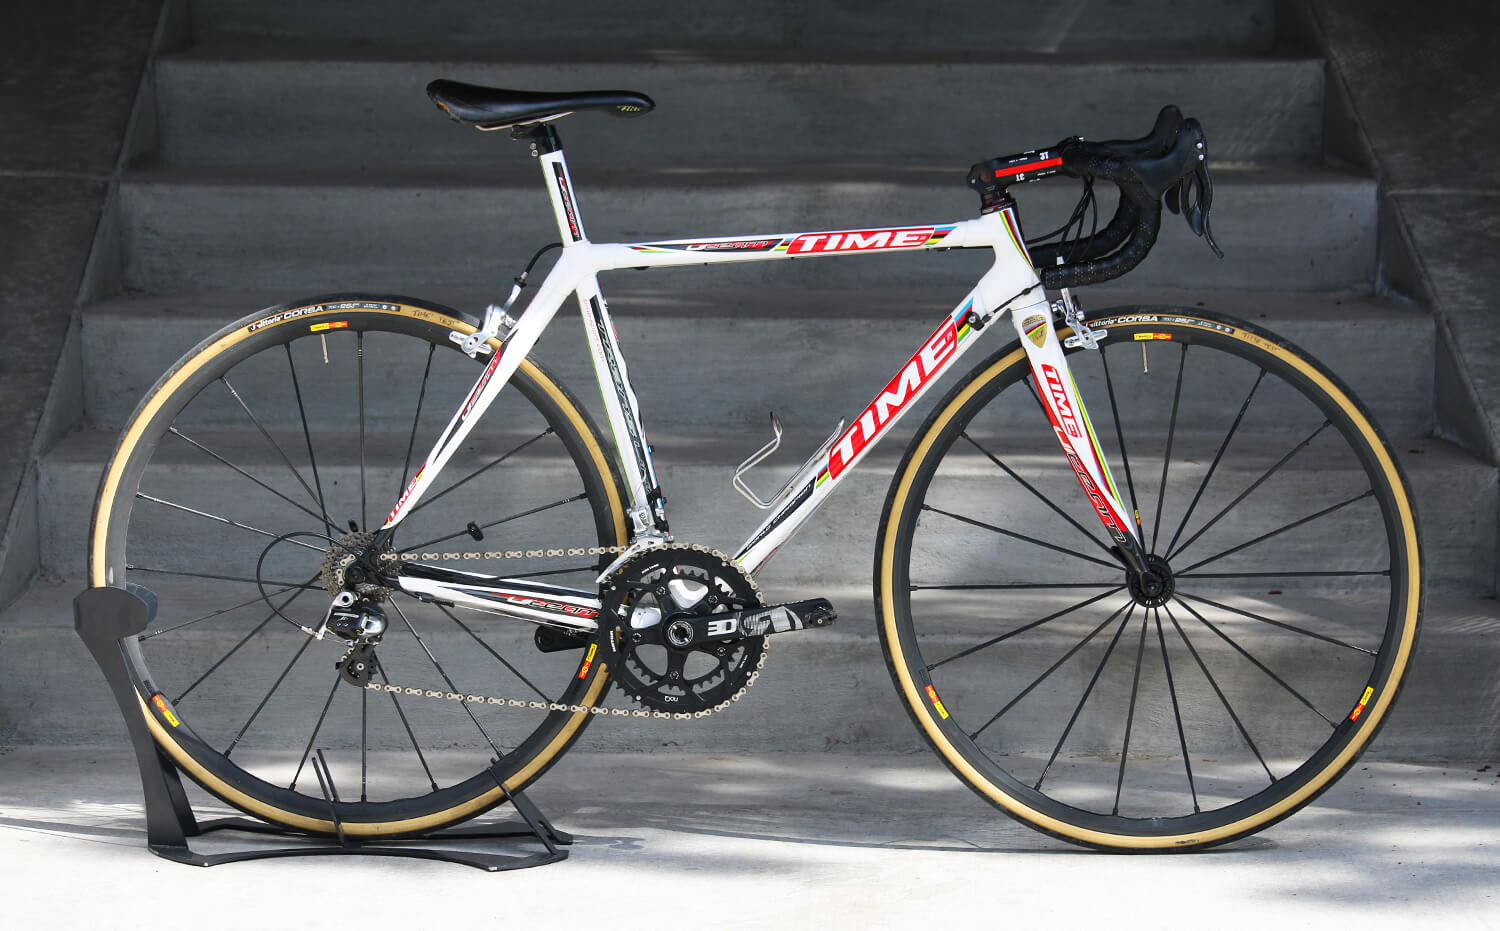 TIME VXRS Ulteam Paolo Bettini Limited Edition Road Bike - Contender Bicycles